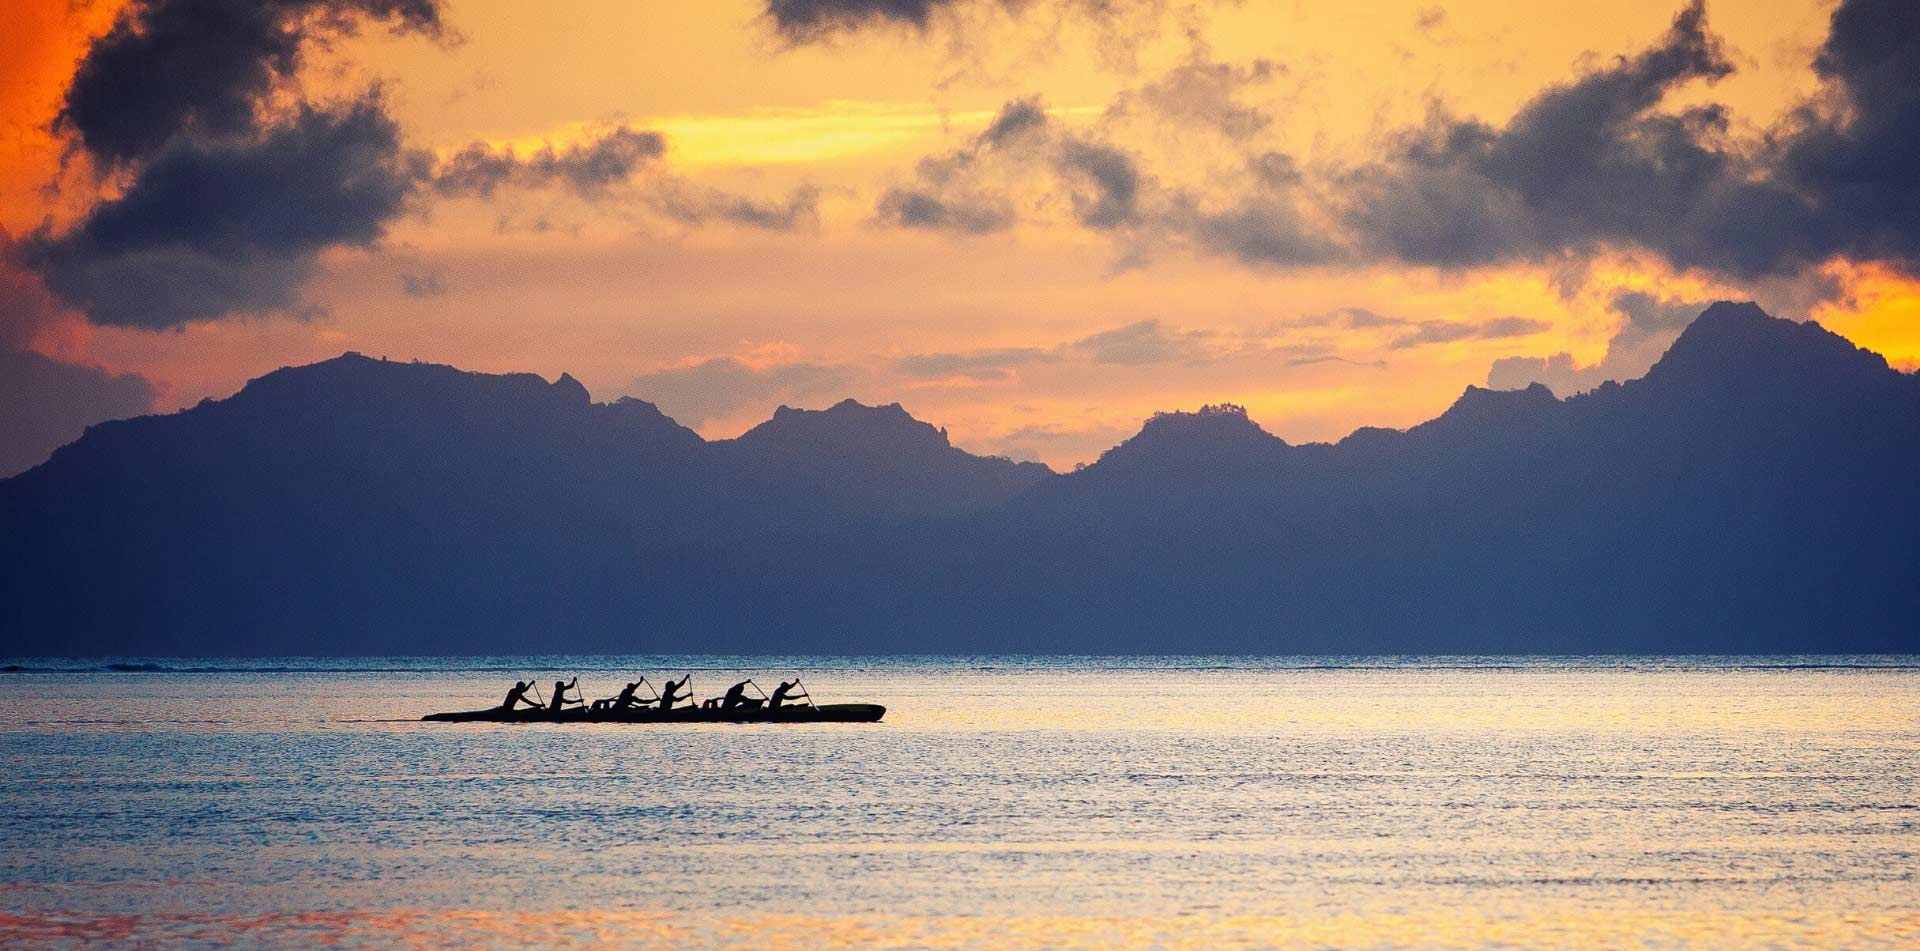 South Pacific Tahiti colorful sunset group rowing calm water scenic mountains  - luxury vacation destinations